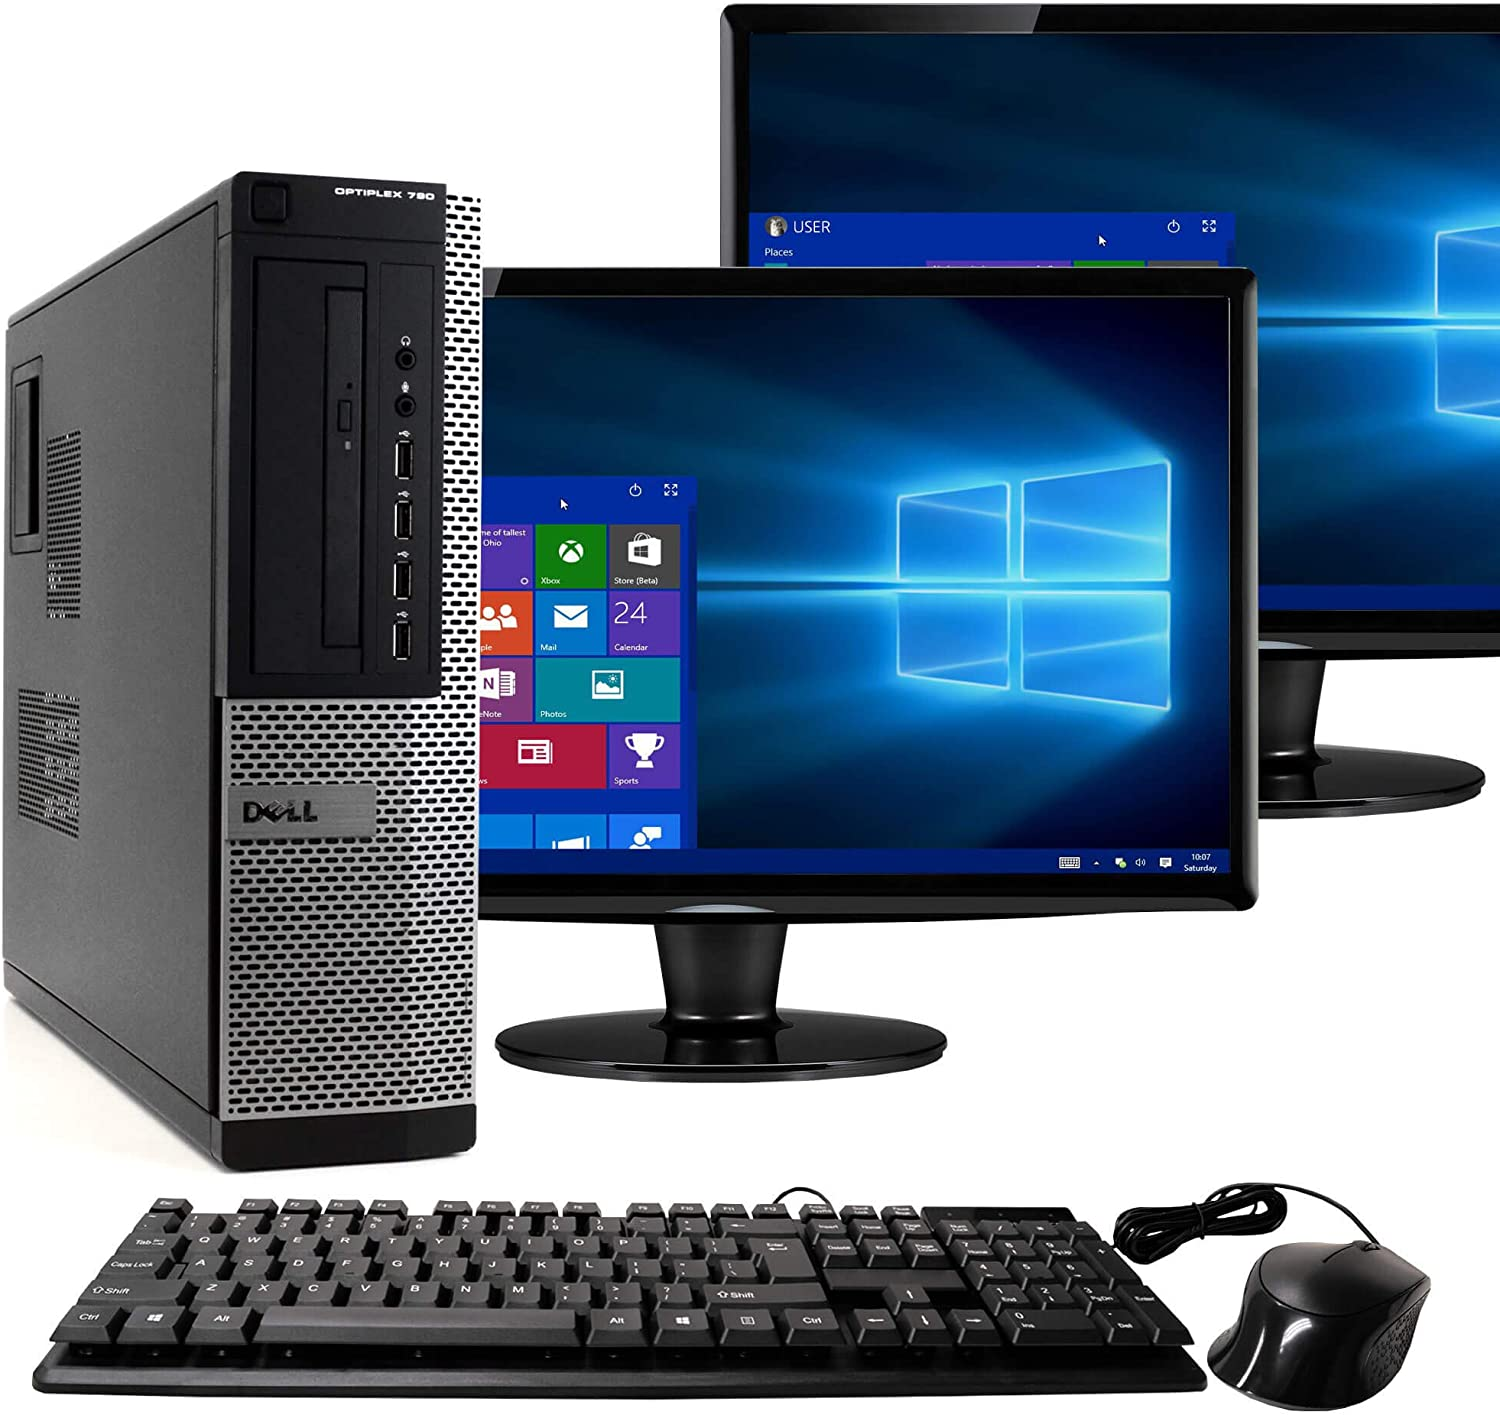 Dell Optiplex 790 Core i5 3.1GHz, 1TB Hard Drive, 16GB Memory, Windows 10 x64, Dual 19 Monitors (Renewed)